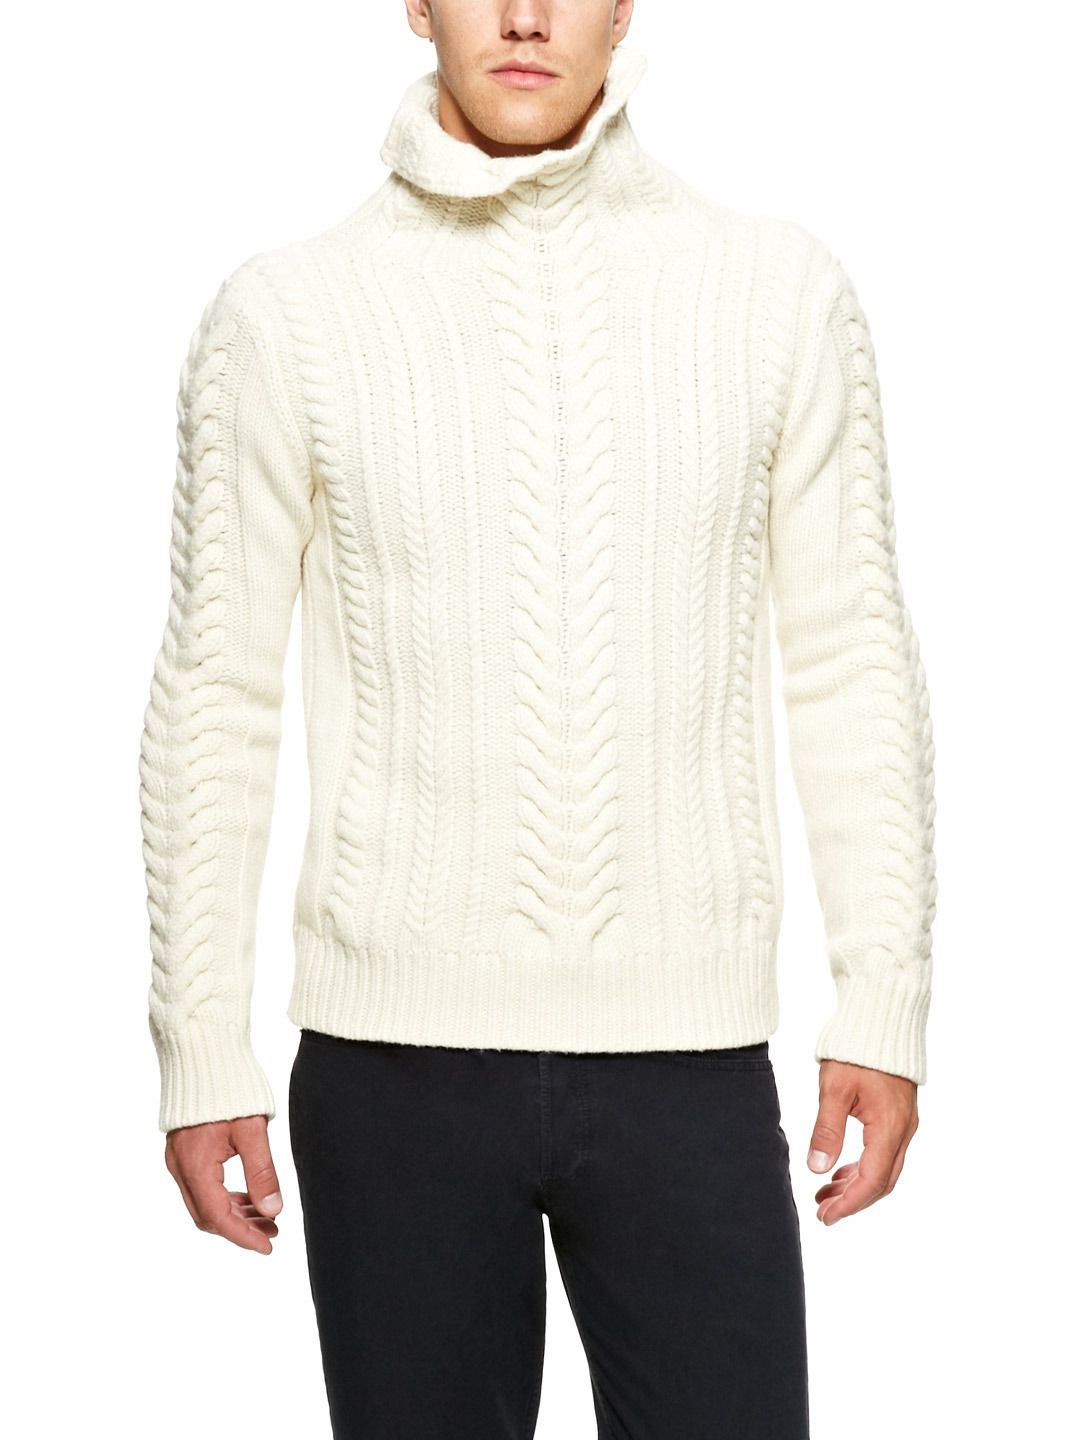 Cable Knit Mock Turtleneck Sweater by Balmain on Park & Bond | For ...